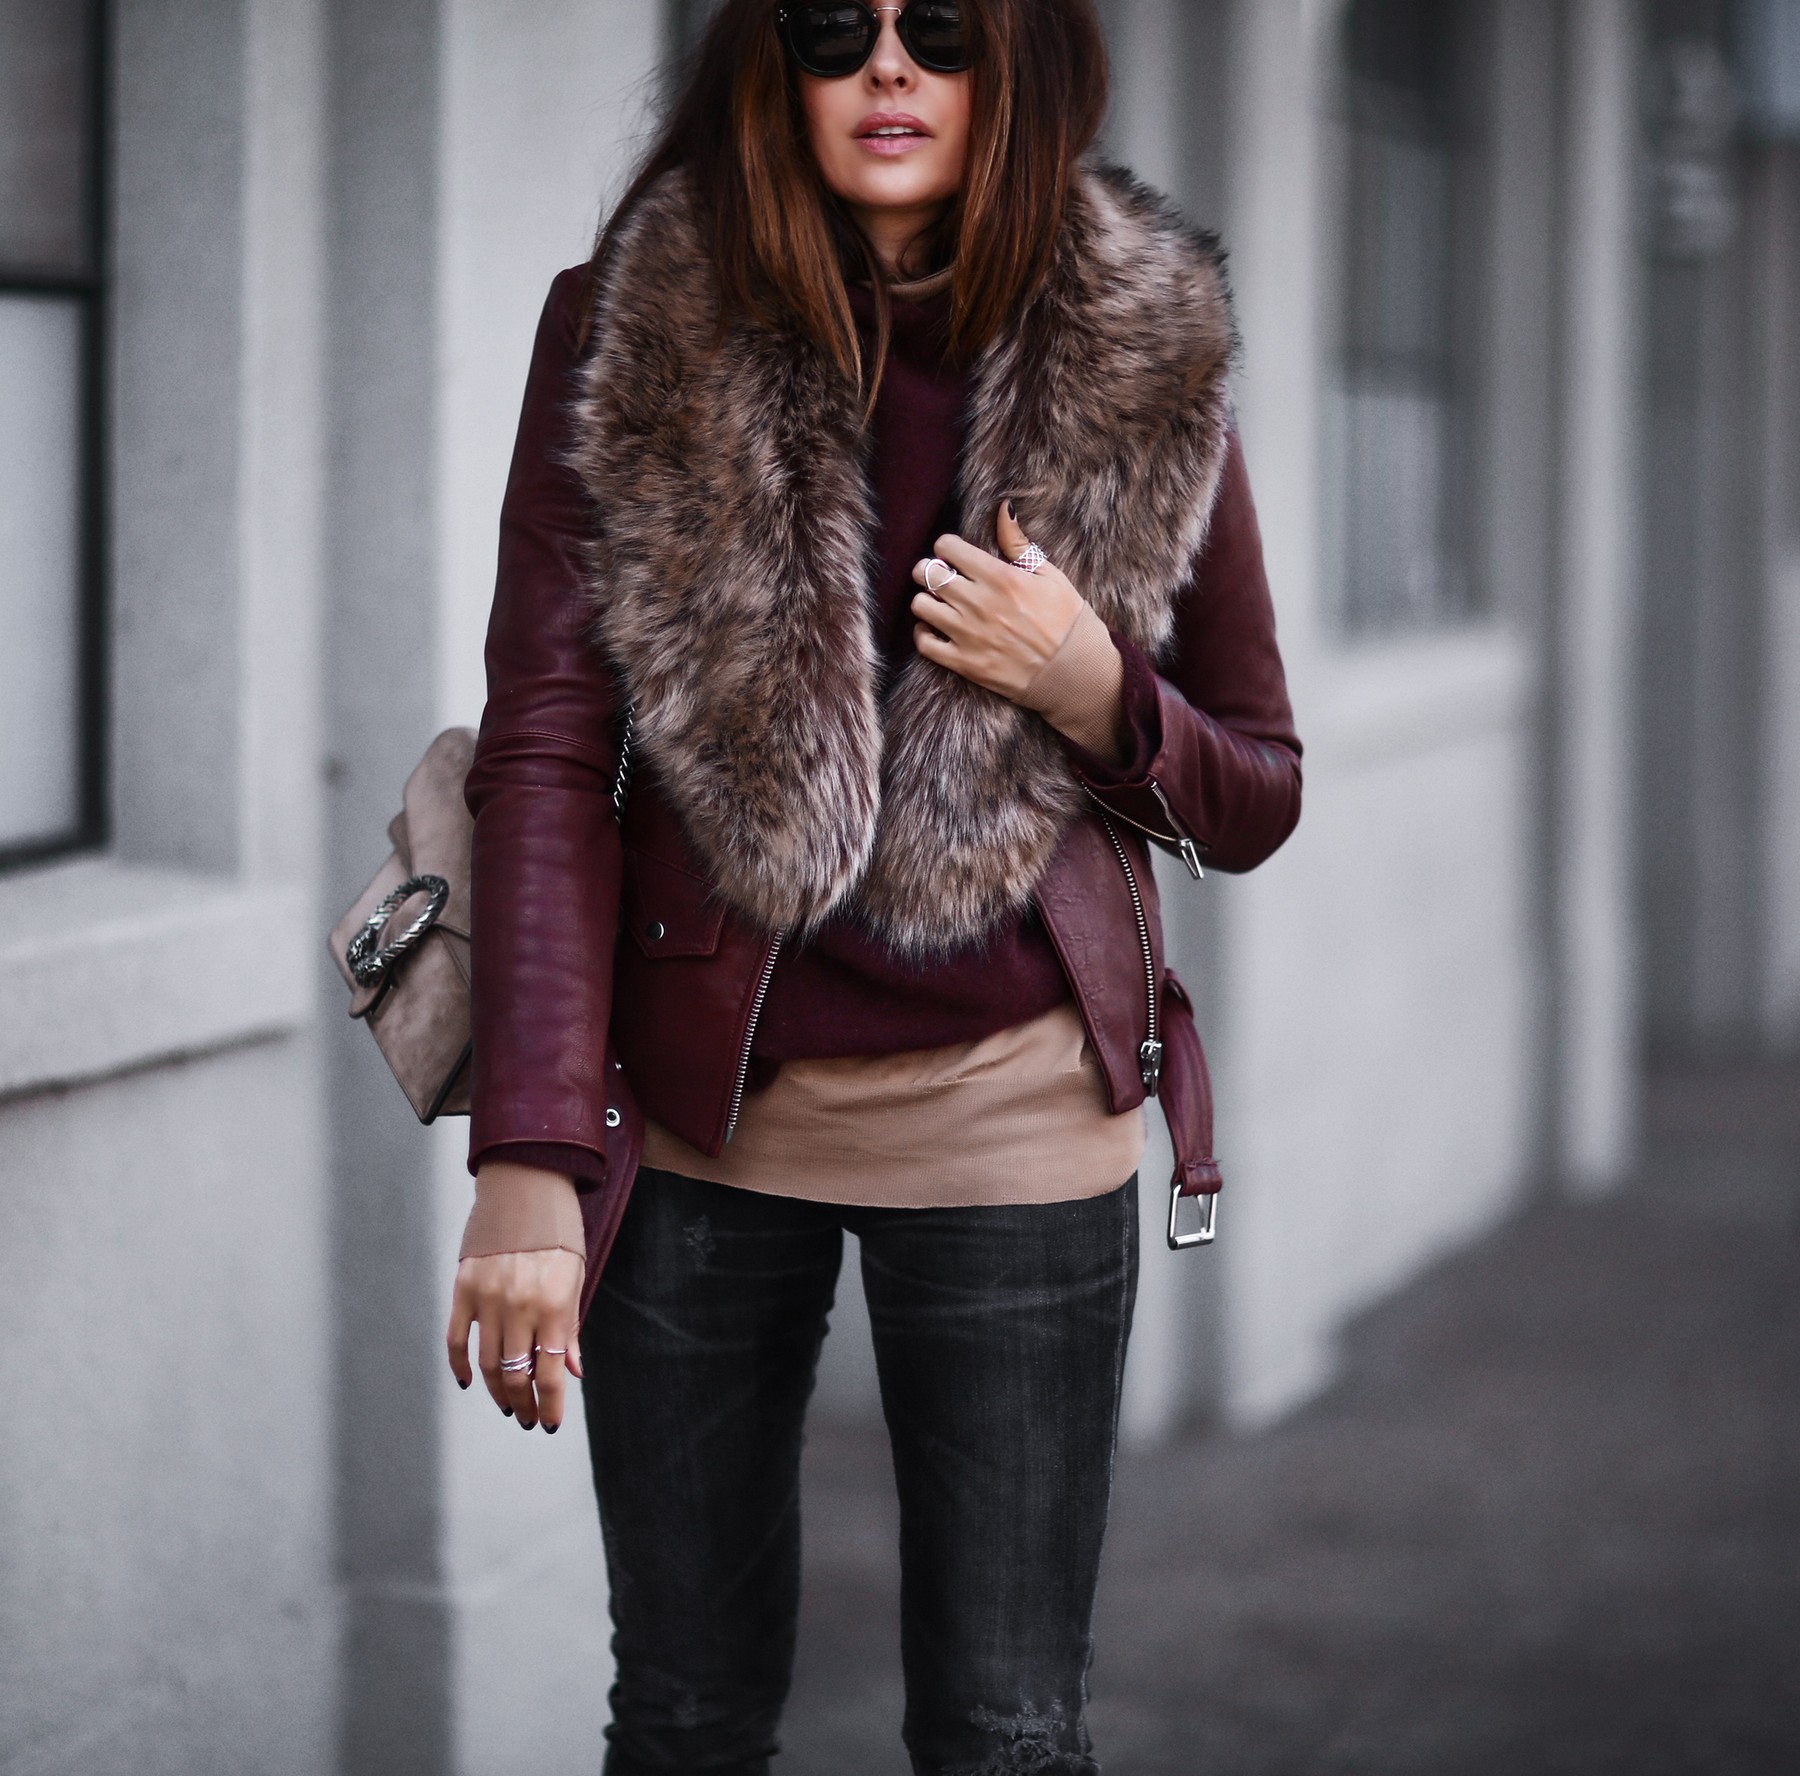 leather jacket, faux fur stole, layered sweaters